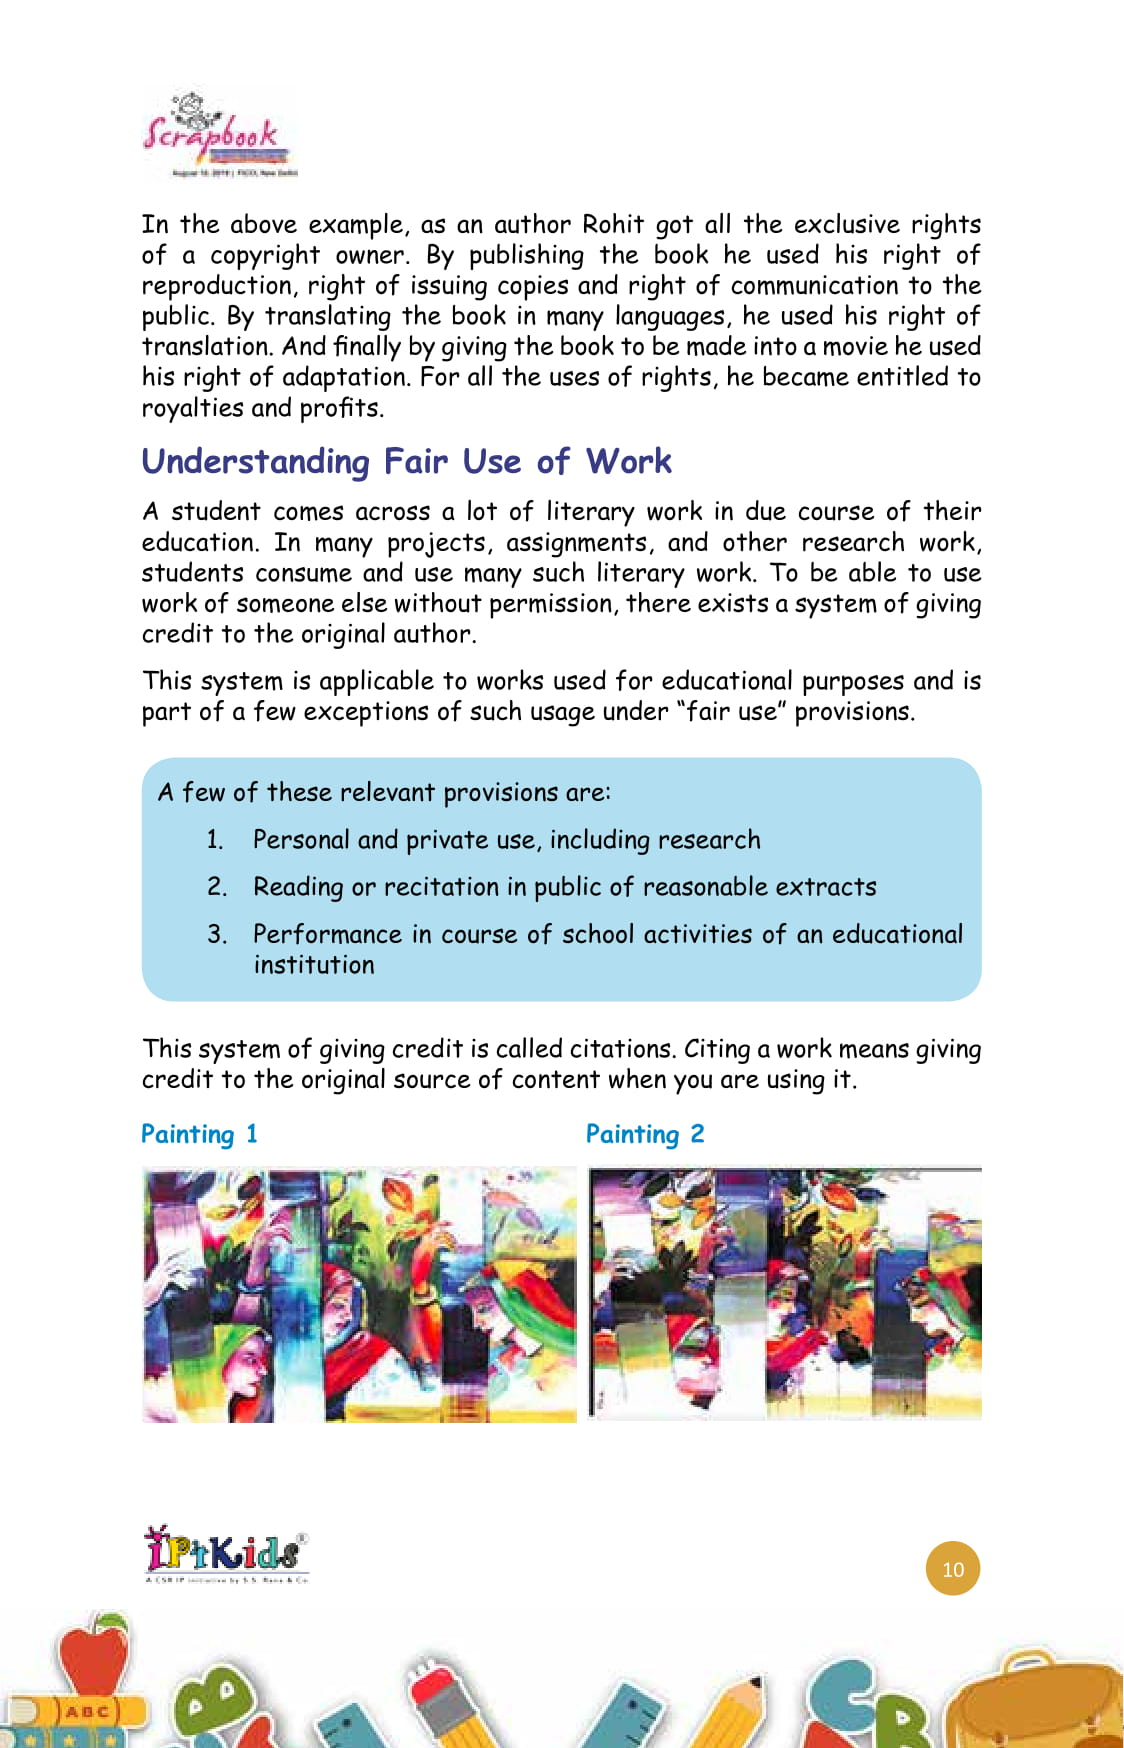 Intellectual Property Rights Basics for Children-10